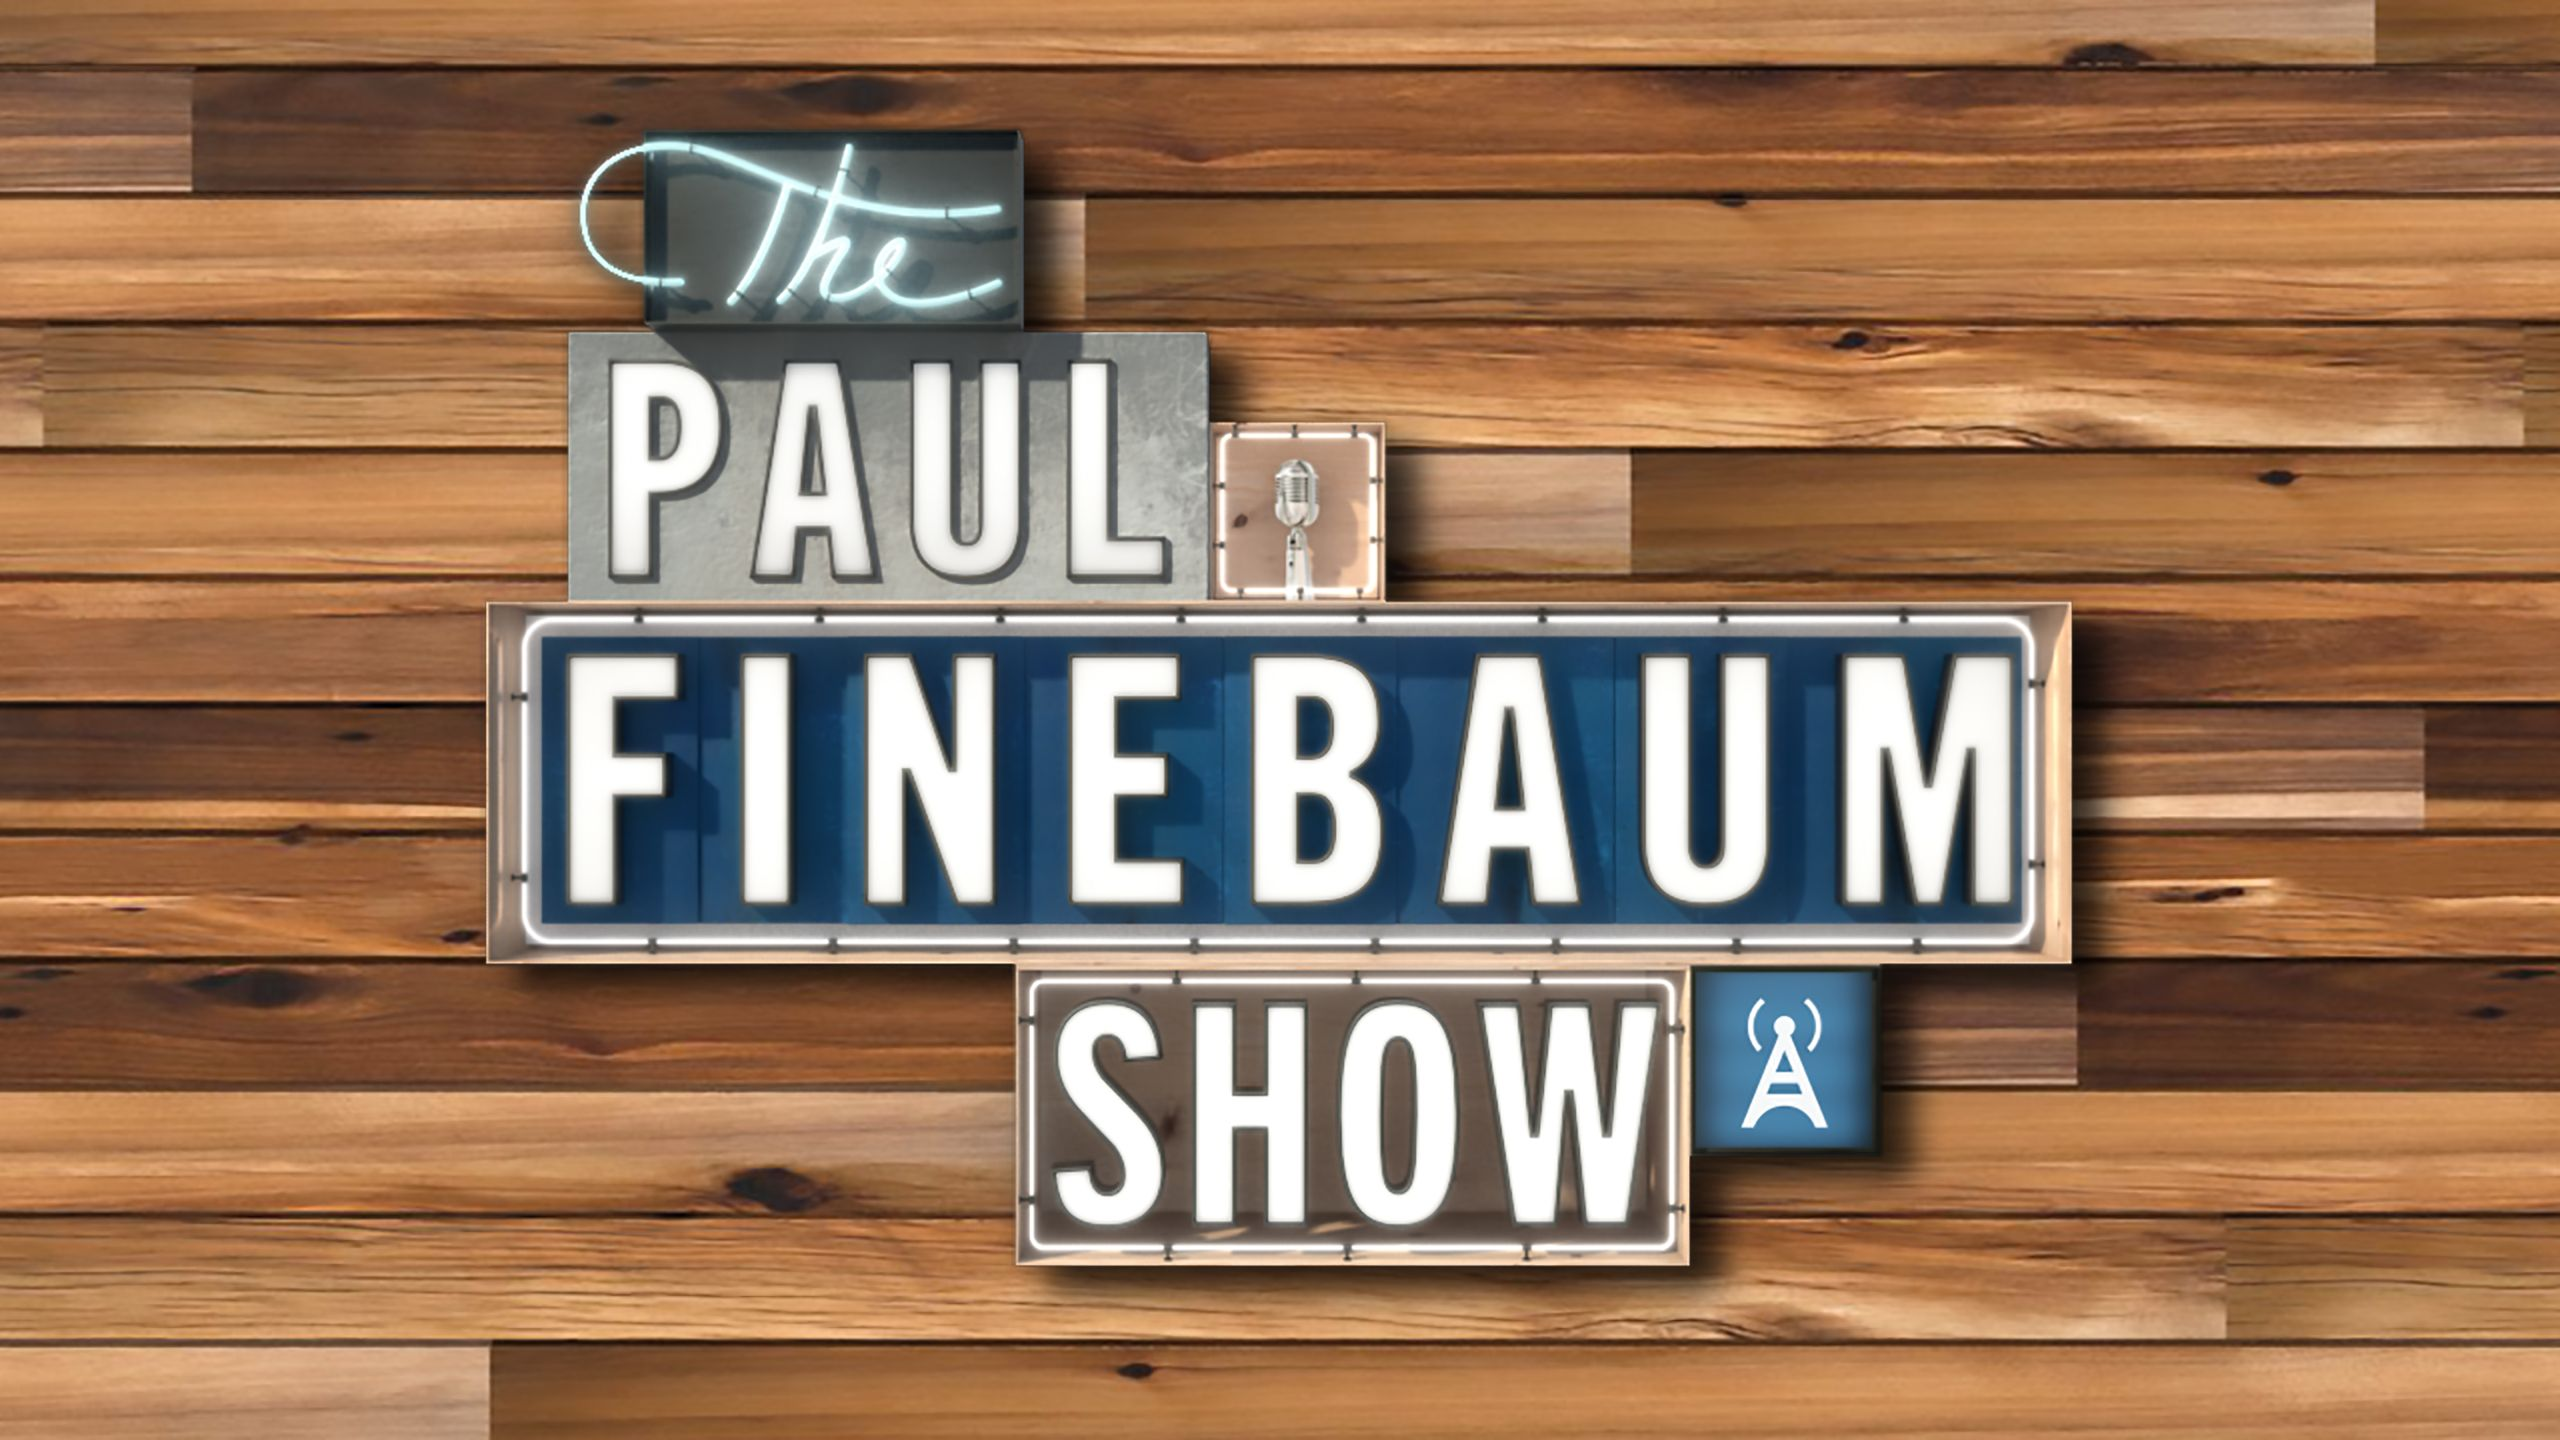 Wed, 4/25 - The Paul Finebaum Show